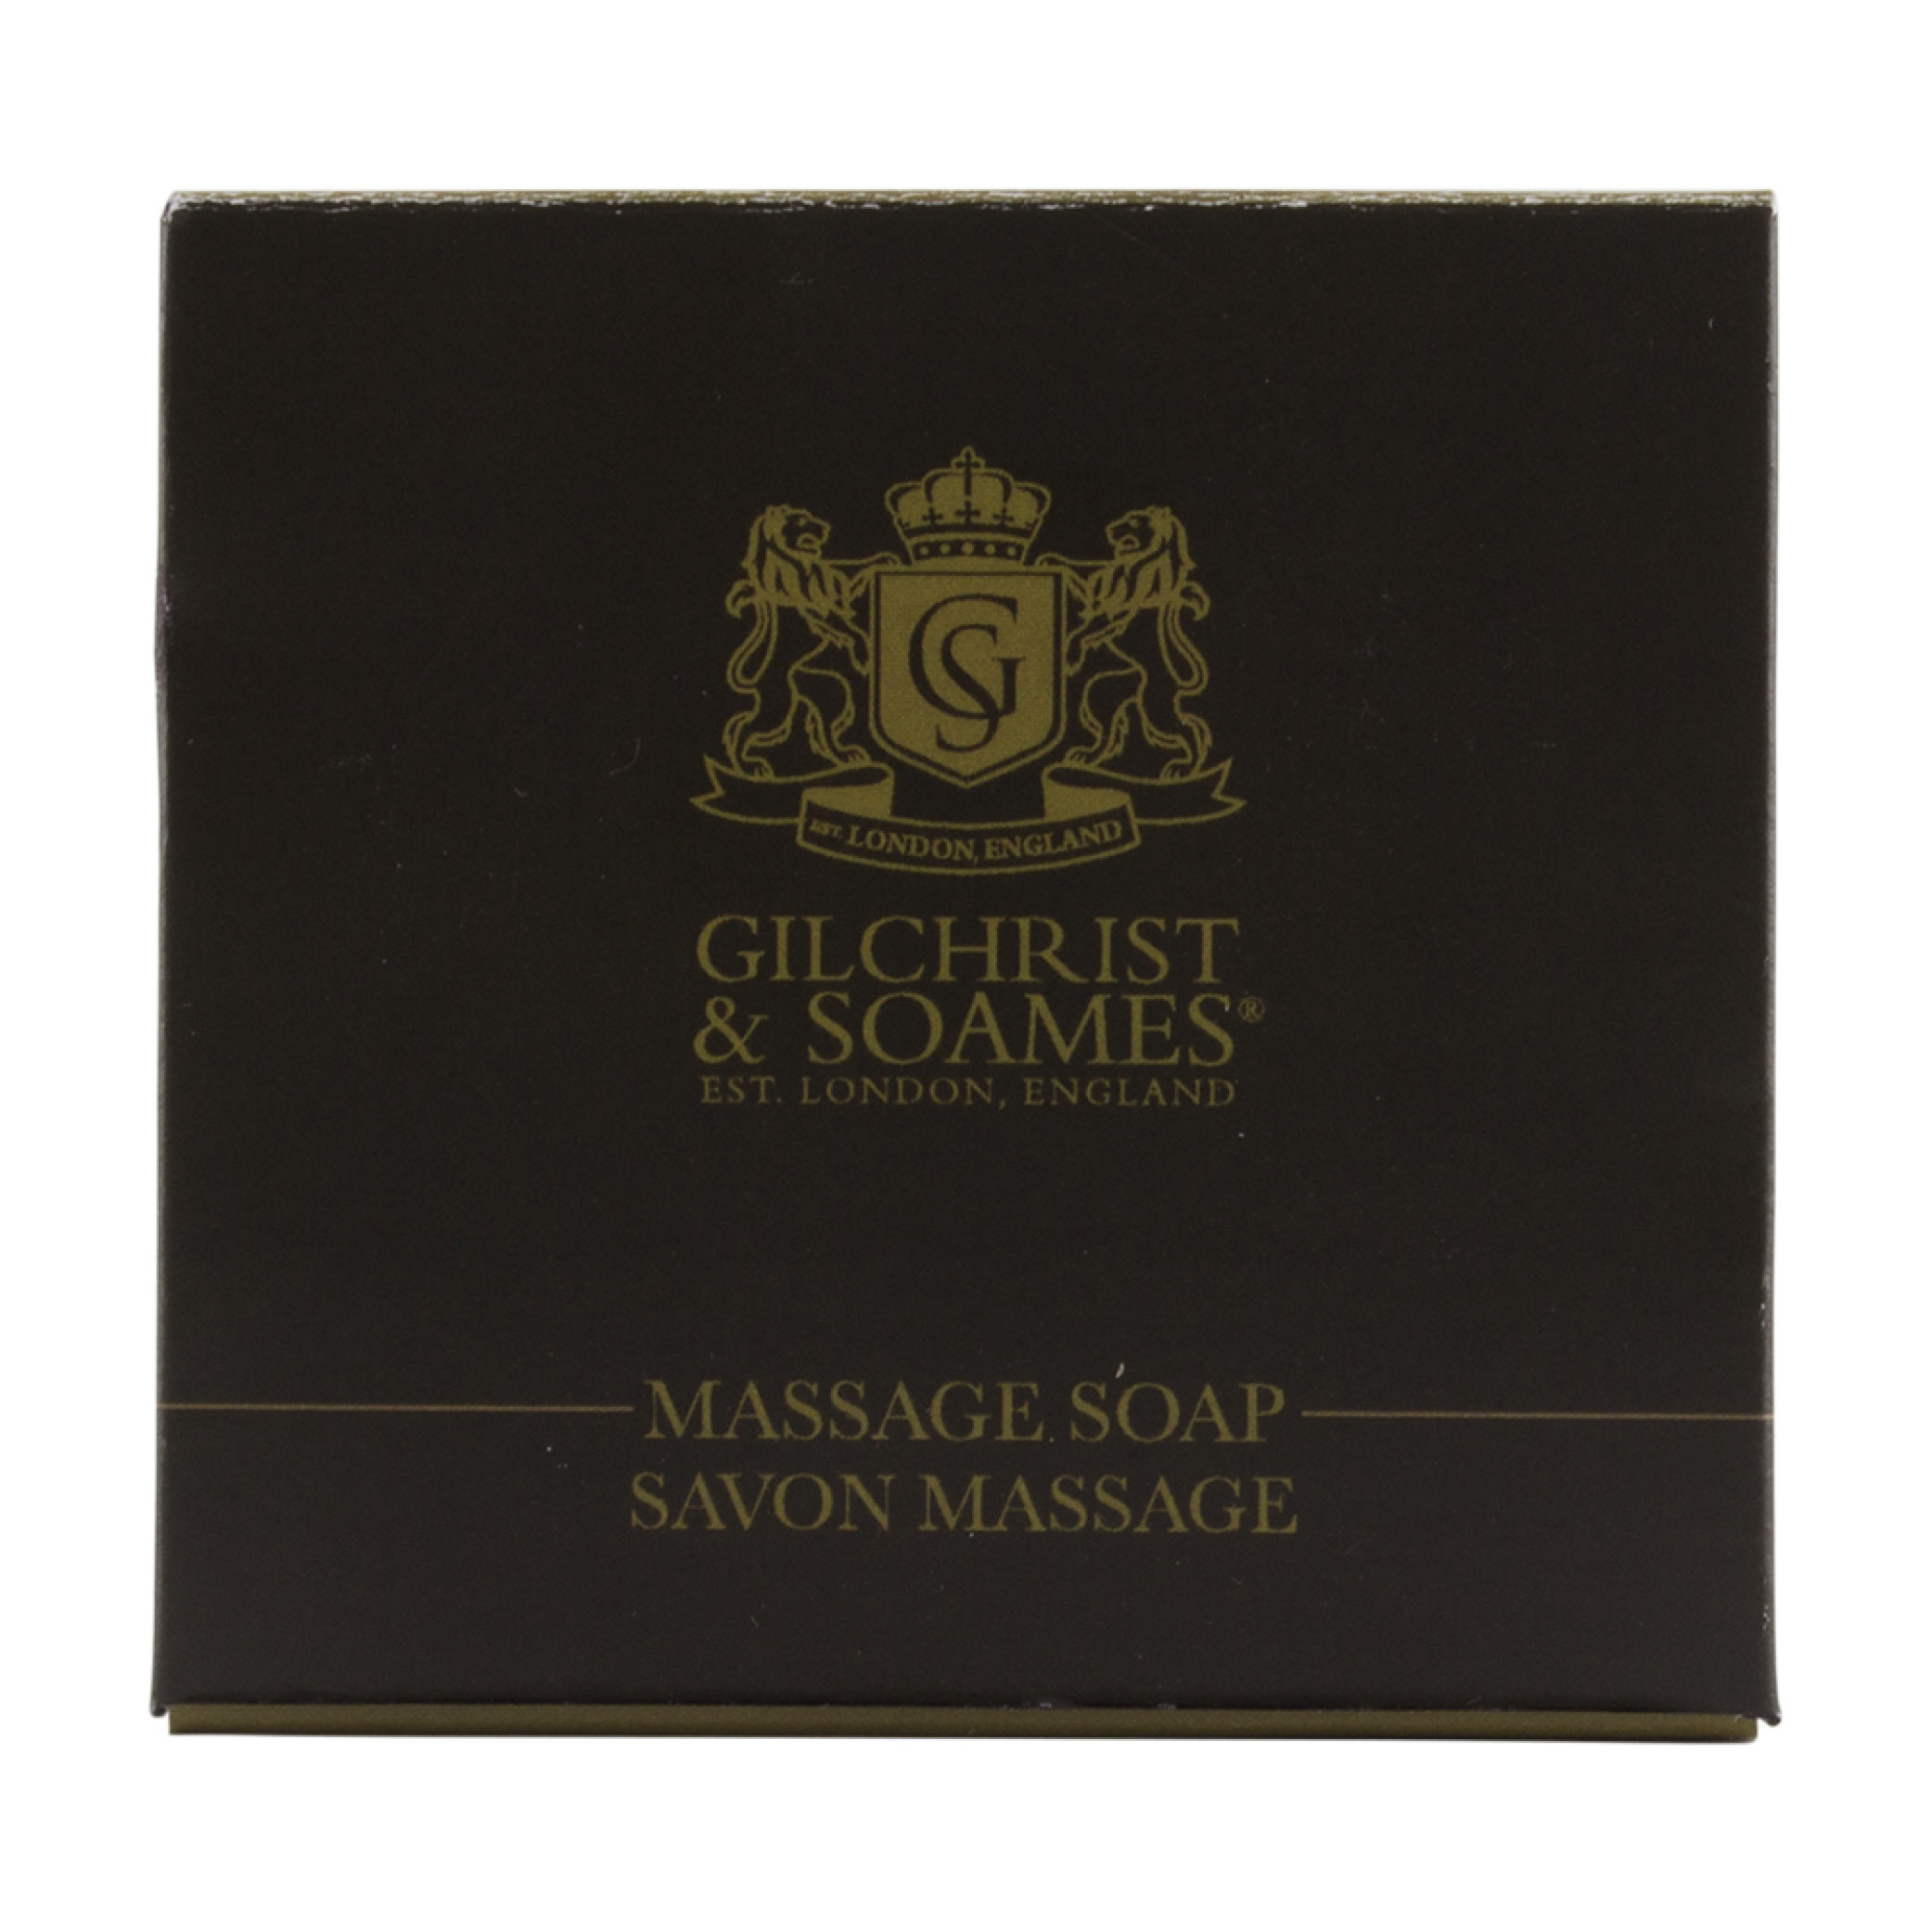 Royal Collection 42g Aloe Massage Soap Carton